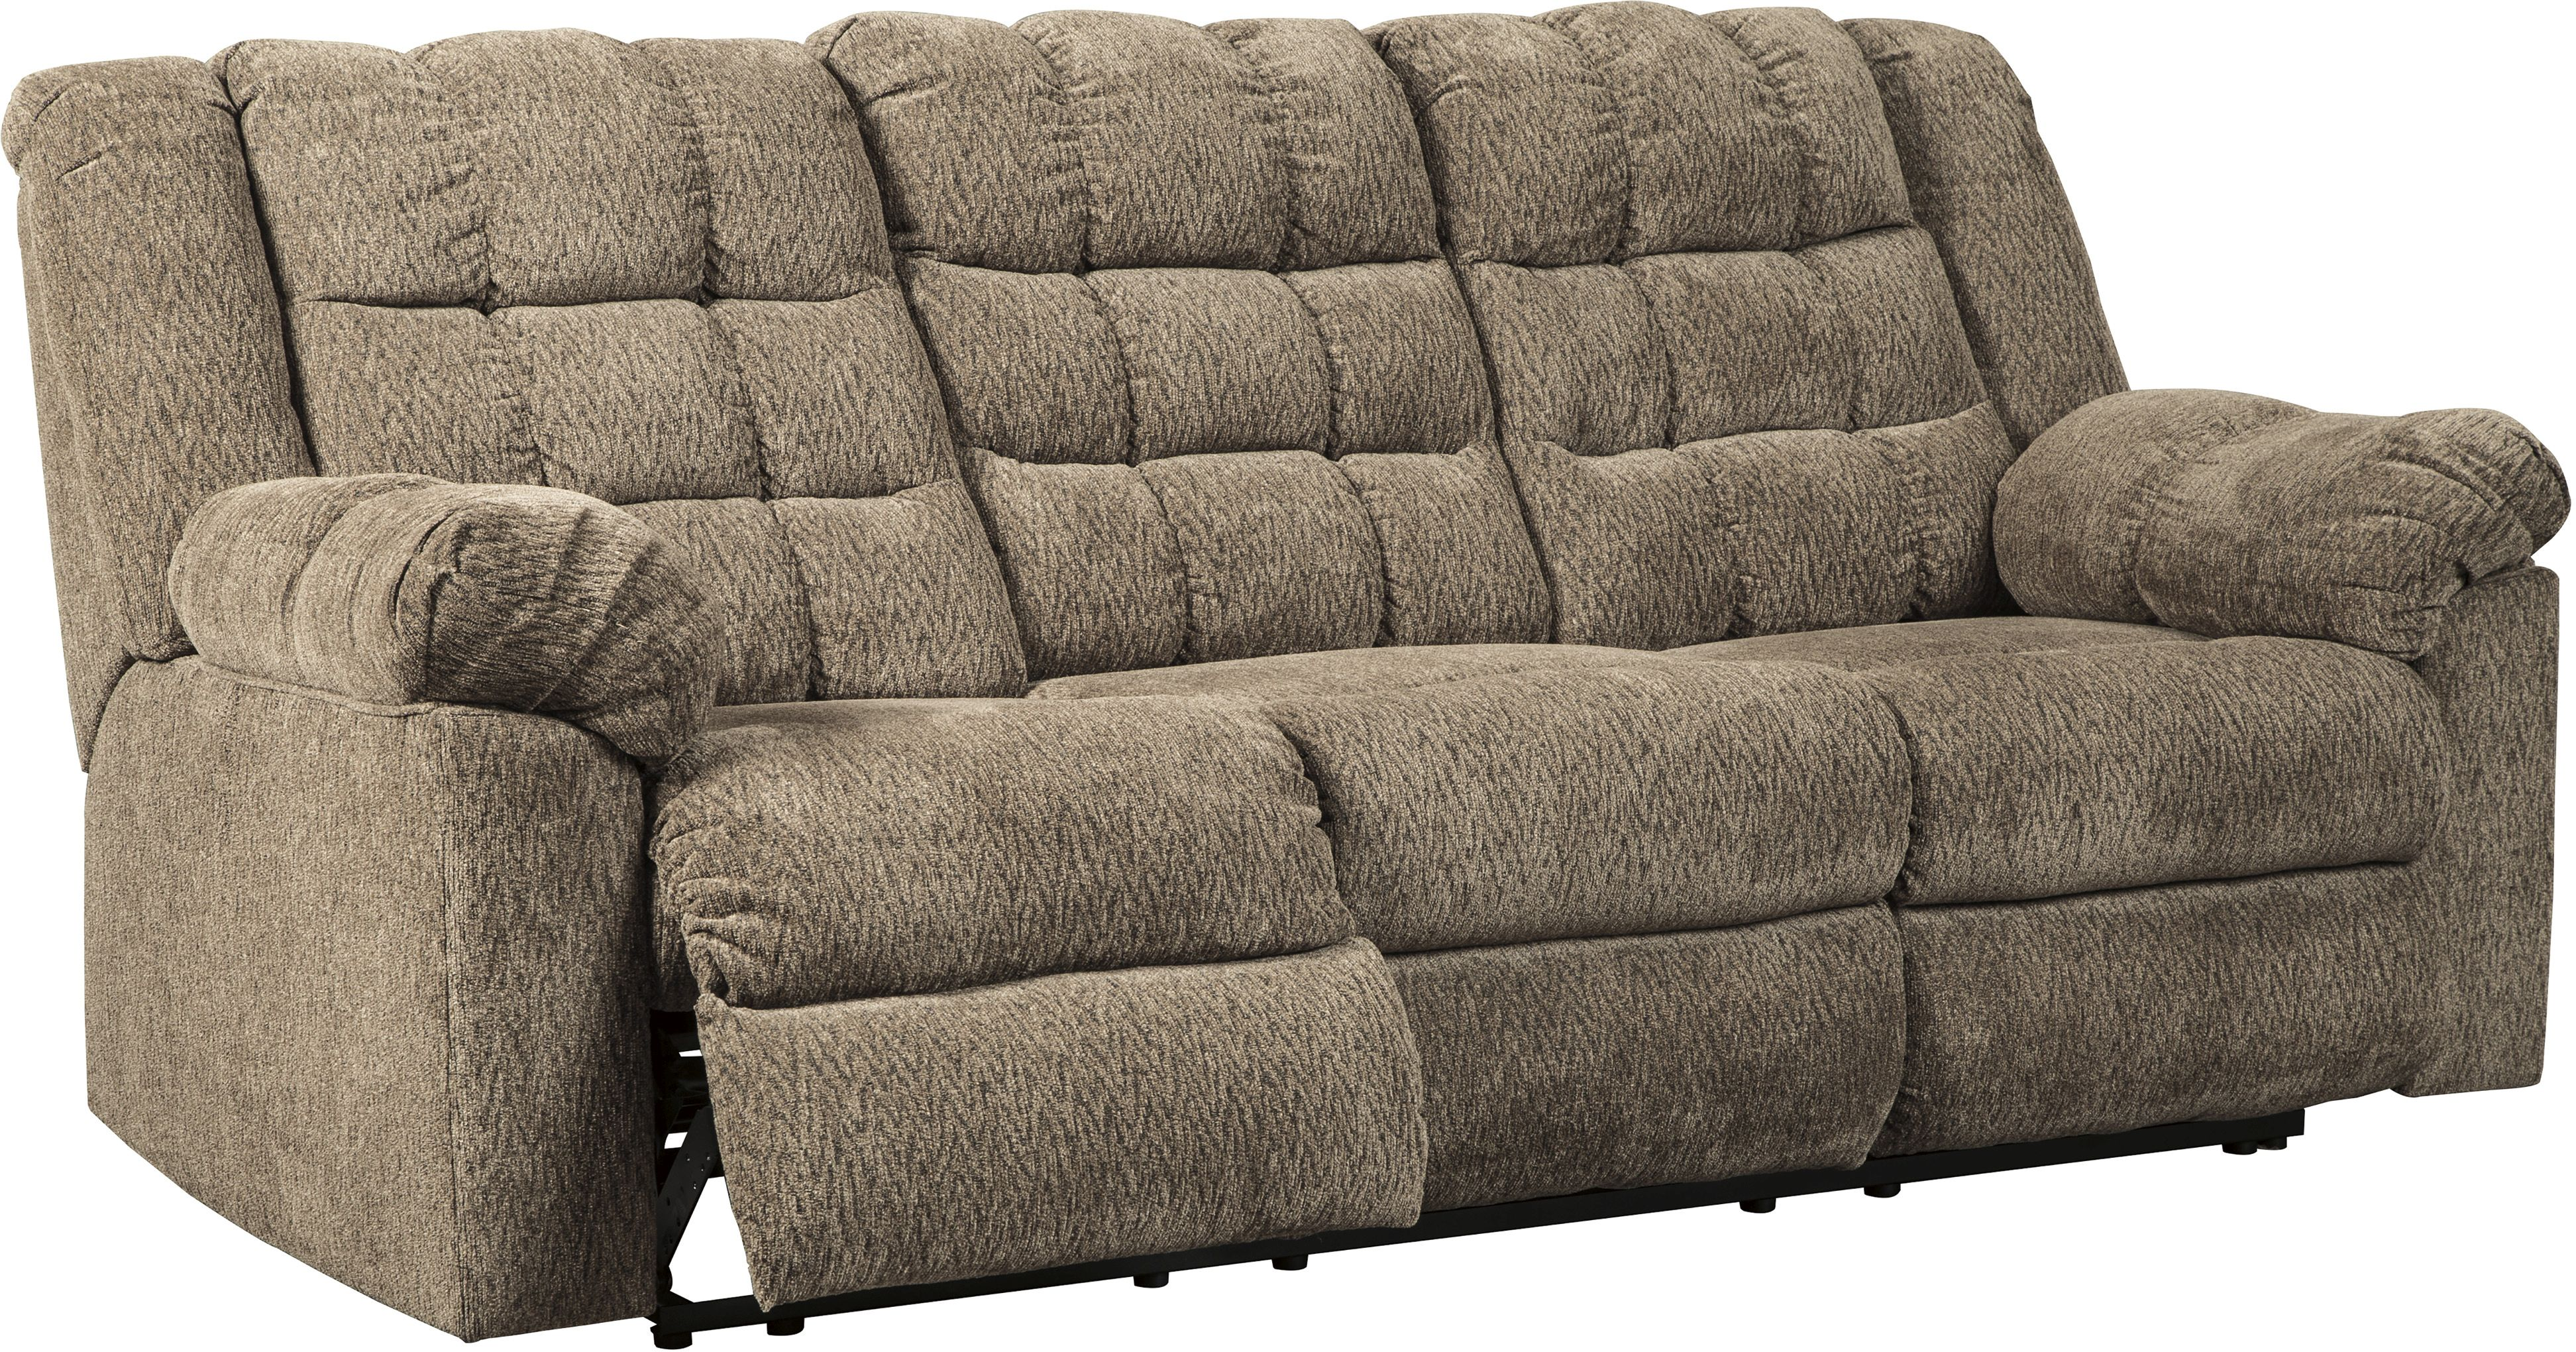 Super Signature Design By Ashley Workhorse Cocoa Reclining Sofa 5840188 Andrewgaddart Wooden Chair Designs For Living Room Andrewgaddartcom